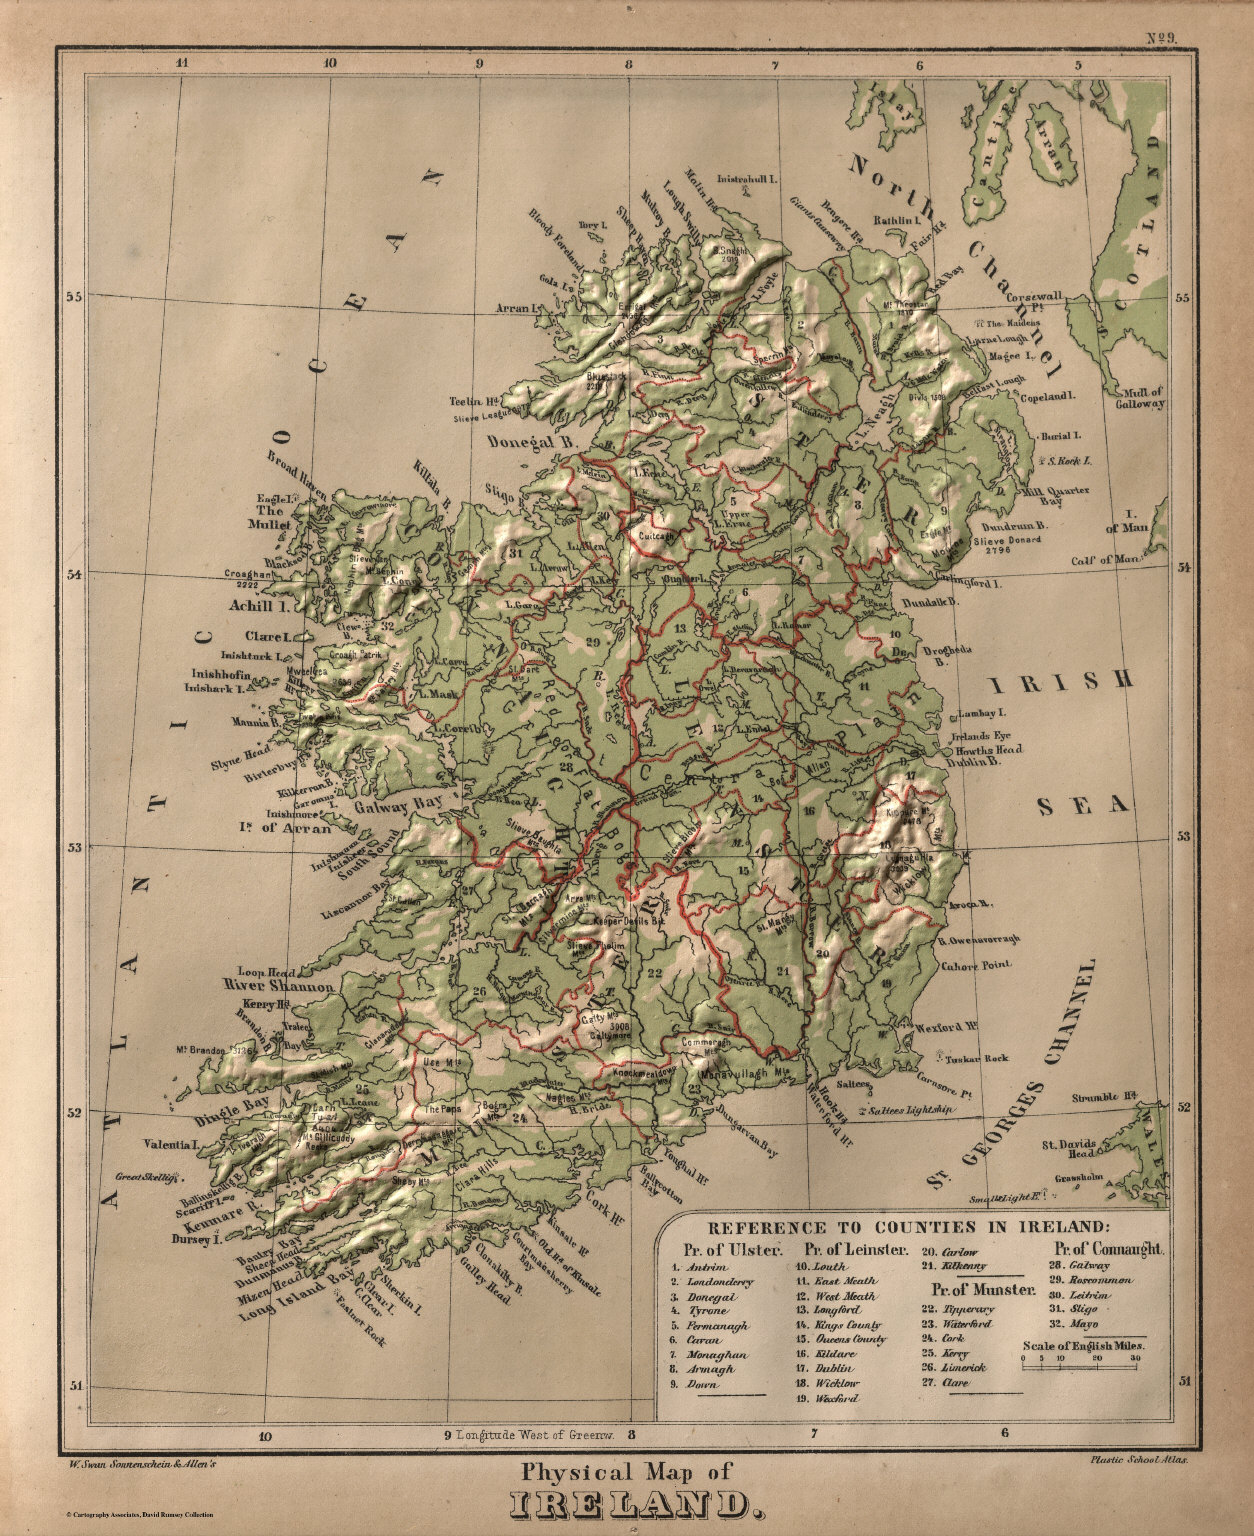 Physical Map Of Ireland David Rumsey Historical Map Collection - Physical map of ireland